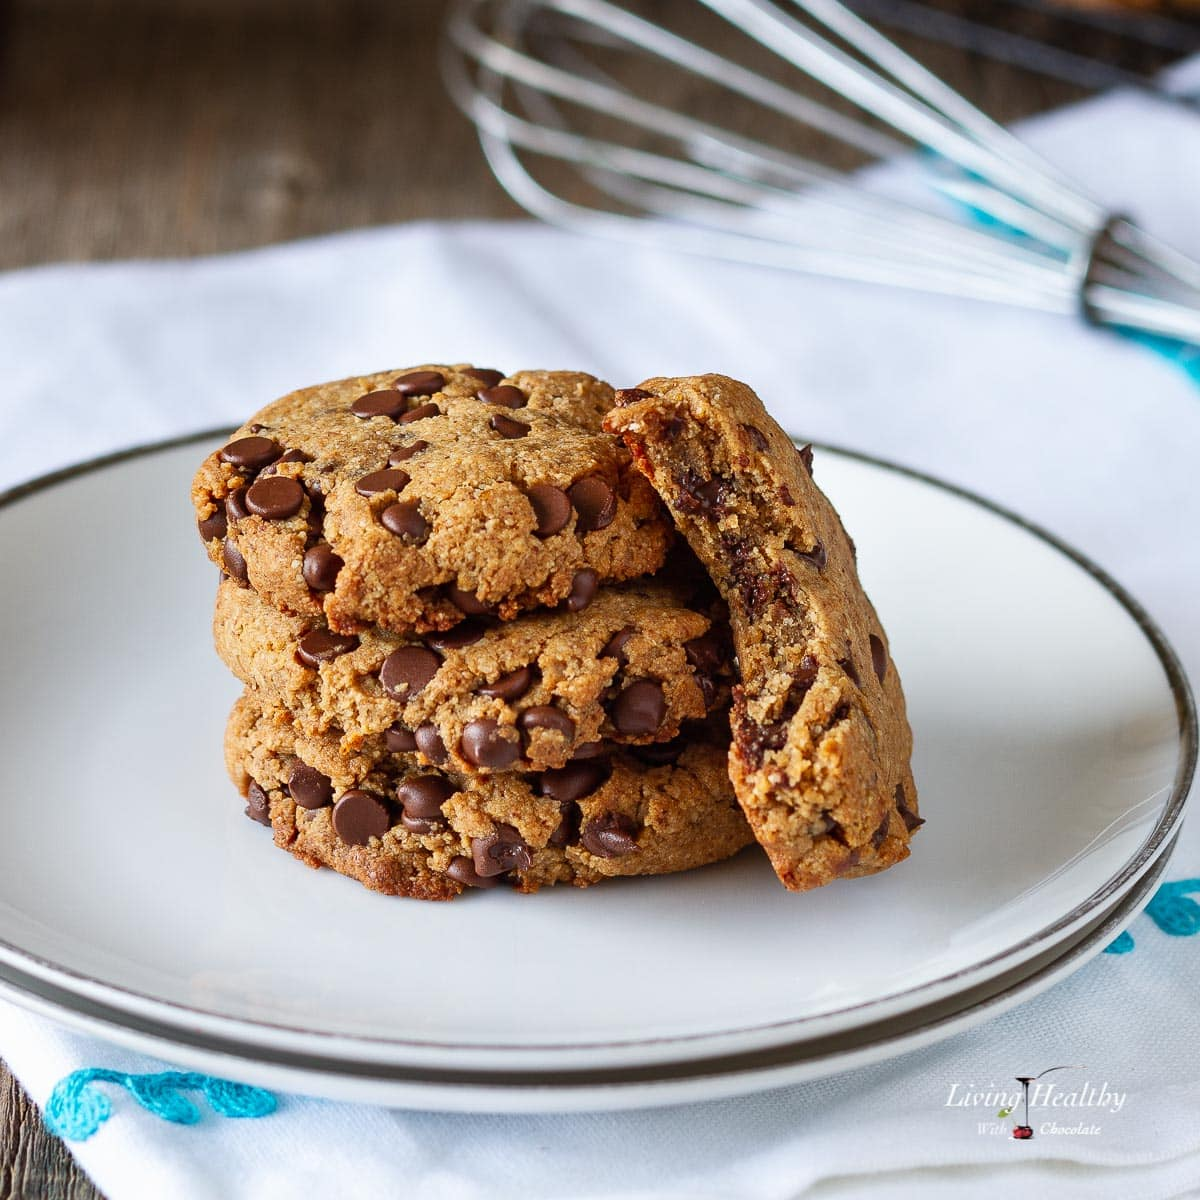 Egg-free Chocolate Chip Cookies (Paleo, Vegan, dairy-free, grain-free, gluten-free) by #LivingHealthyWithChocolate